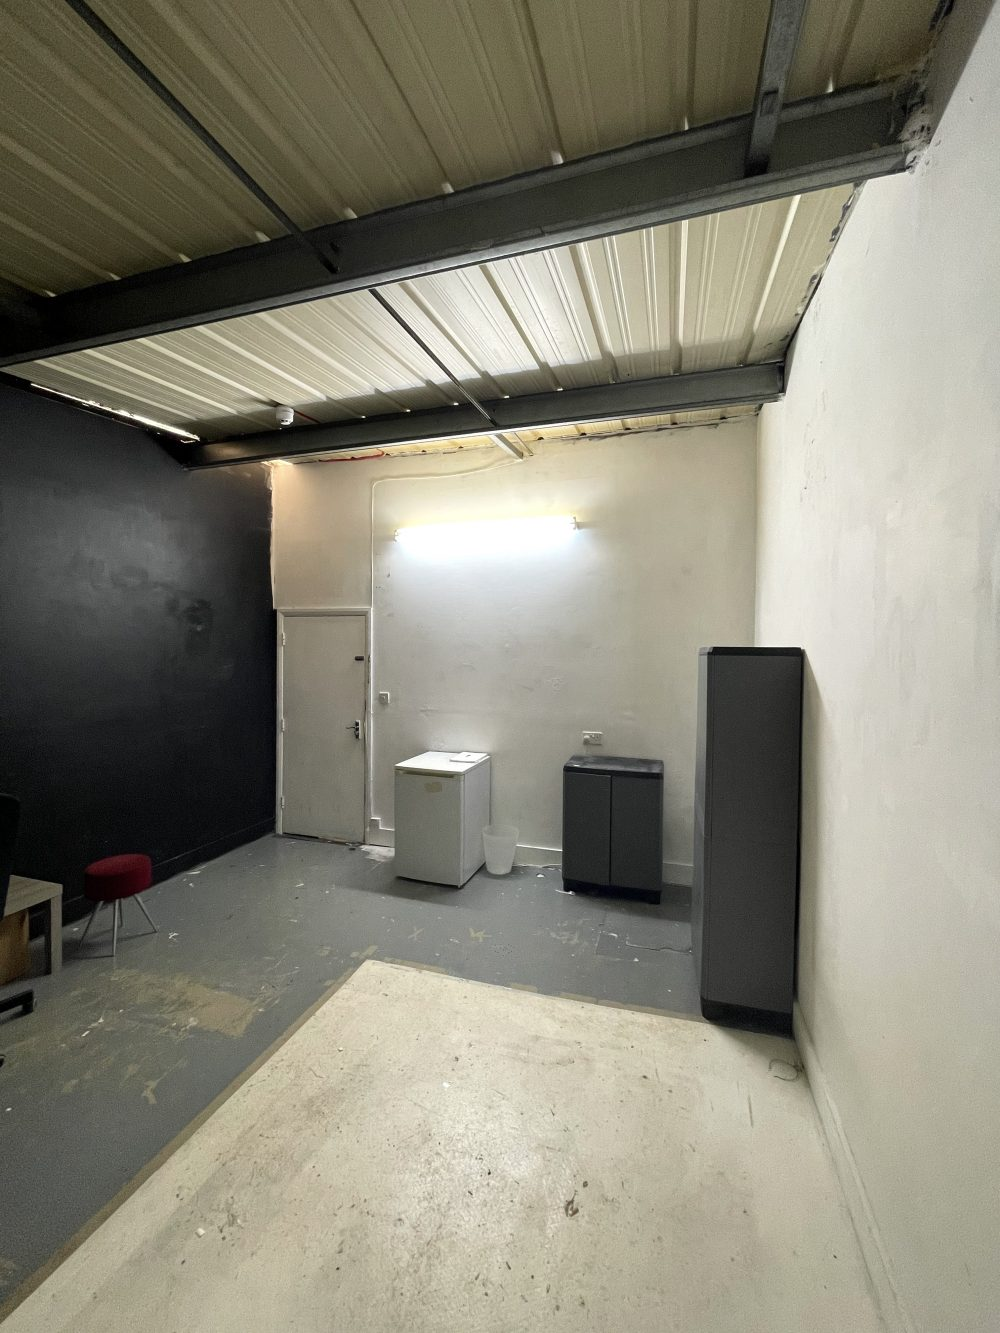 Light indurstrial unit to rent in N16 Stoke Newington Shelford Place PIc12